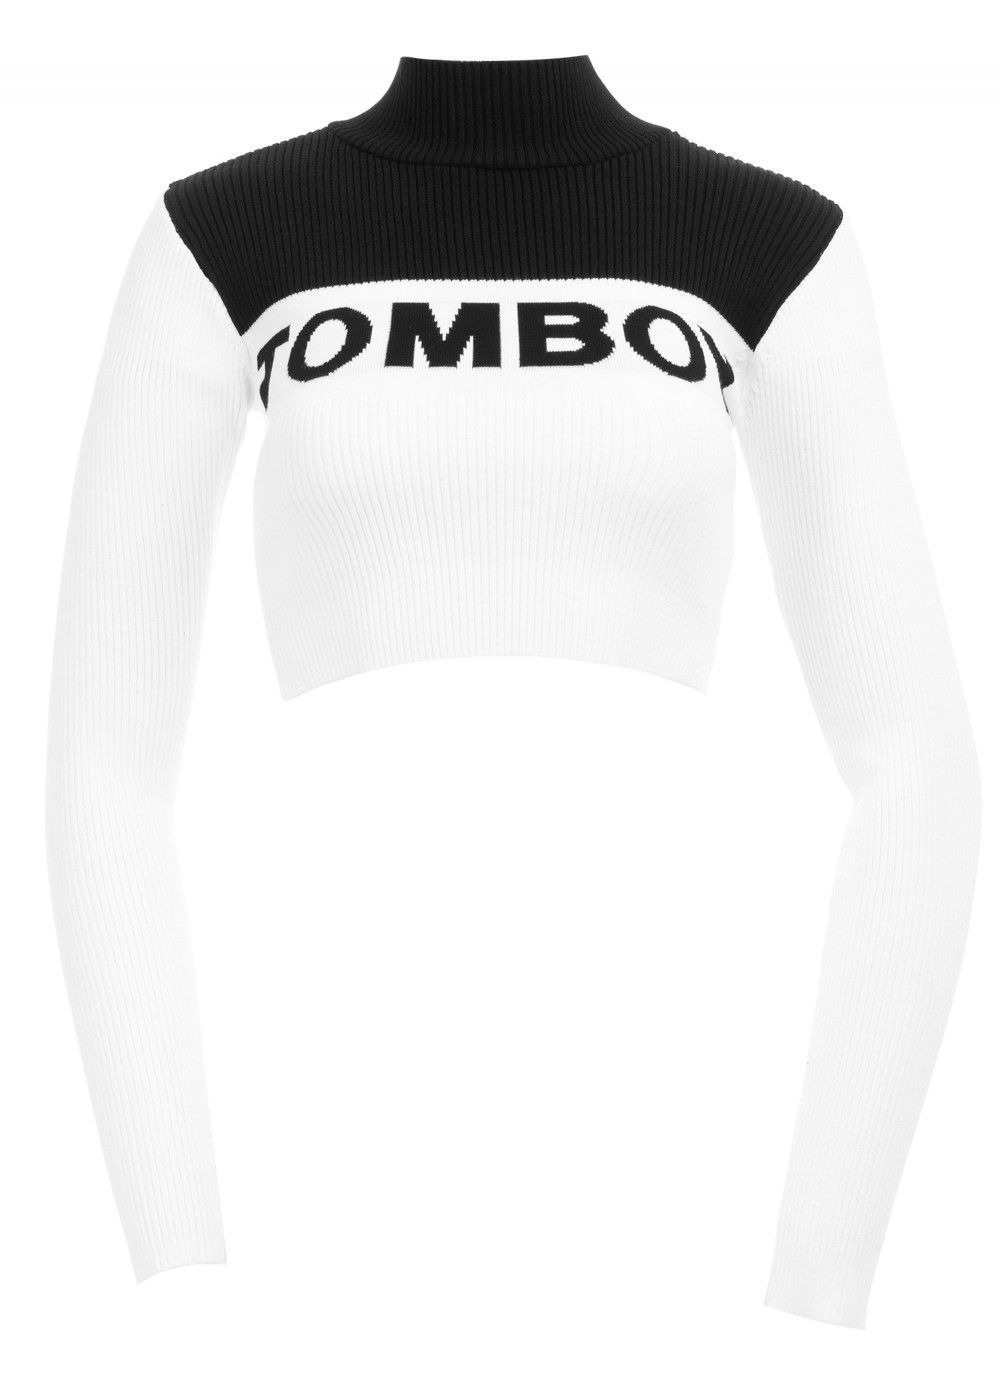 Tomboy Sweater in Black/White